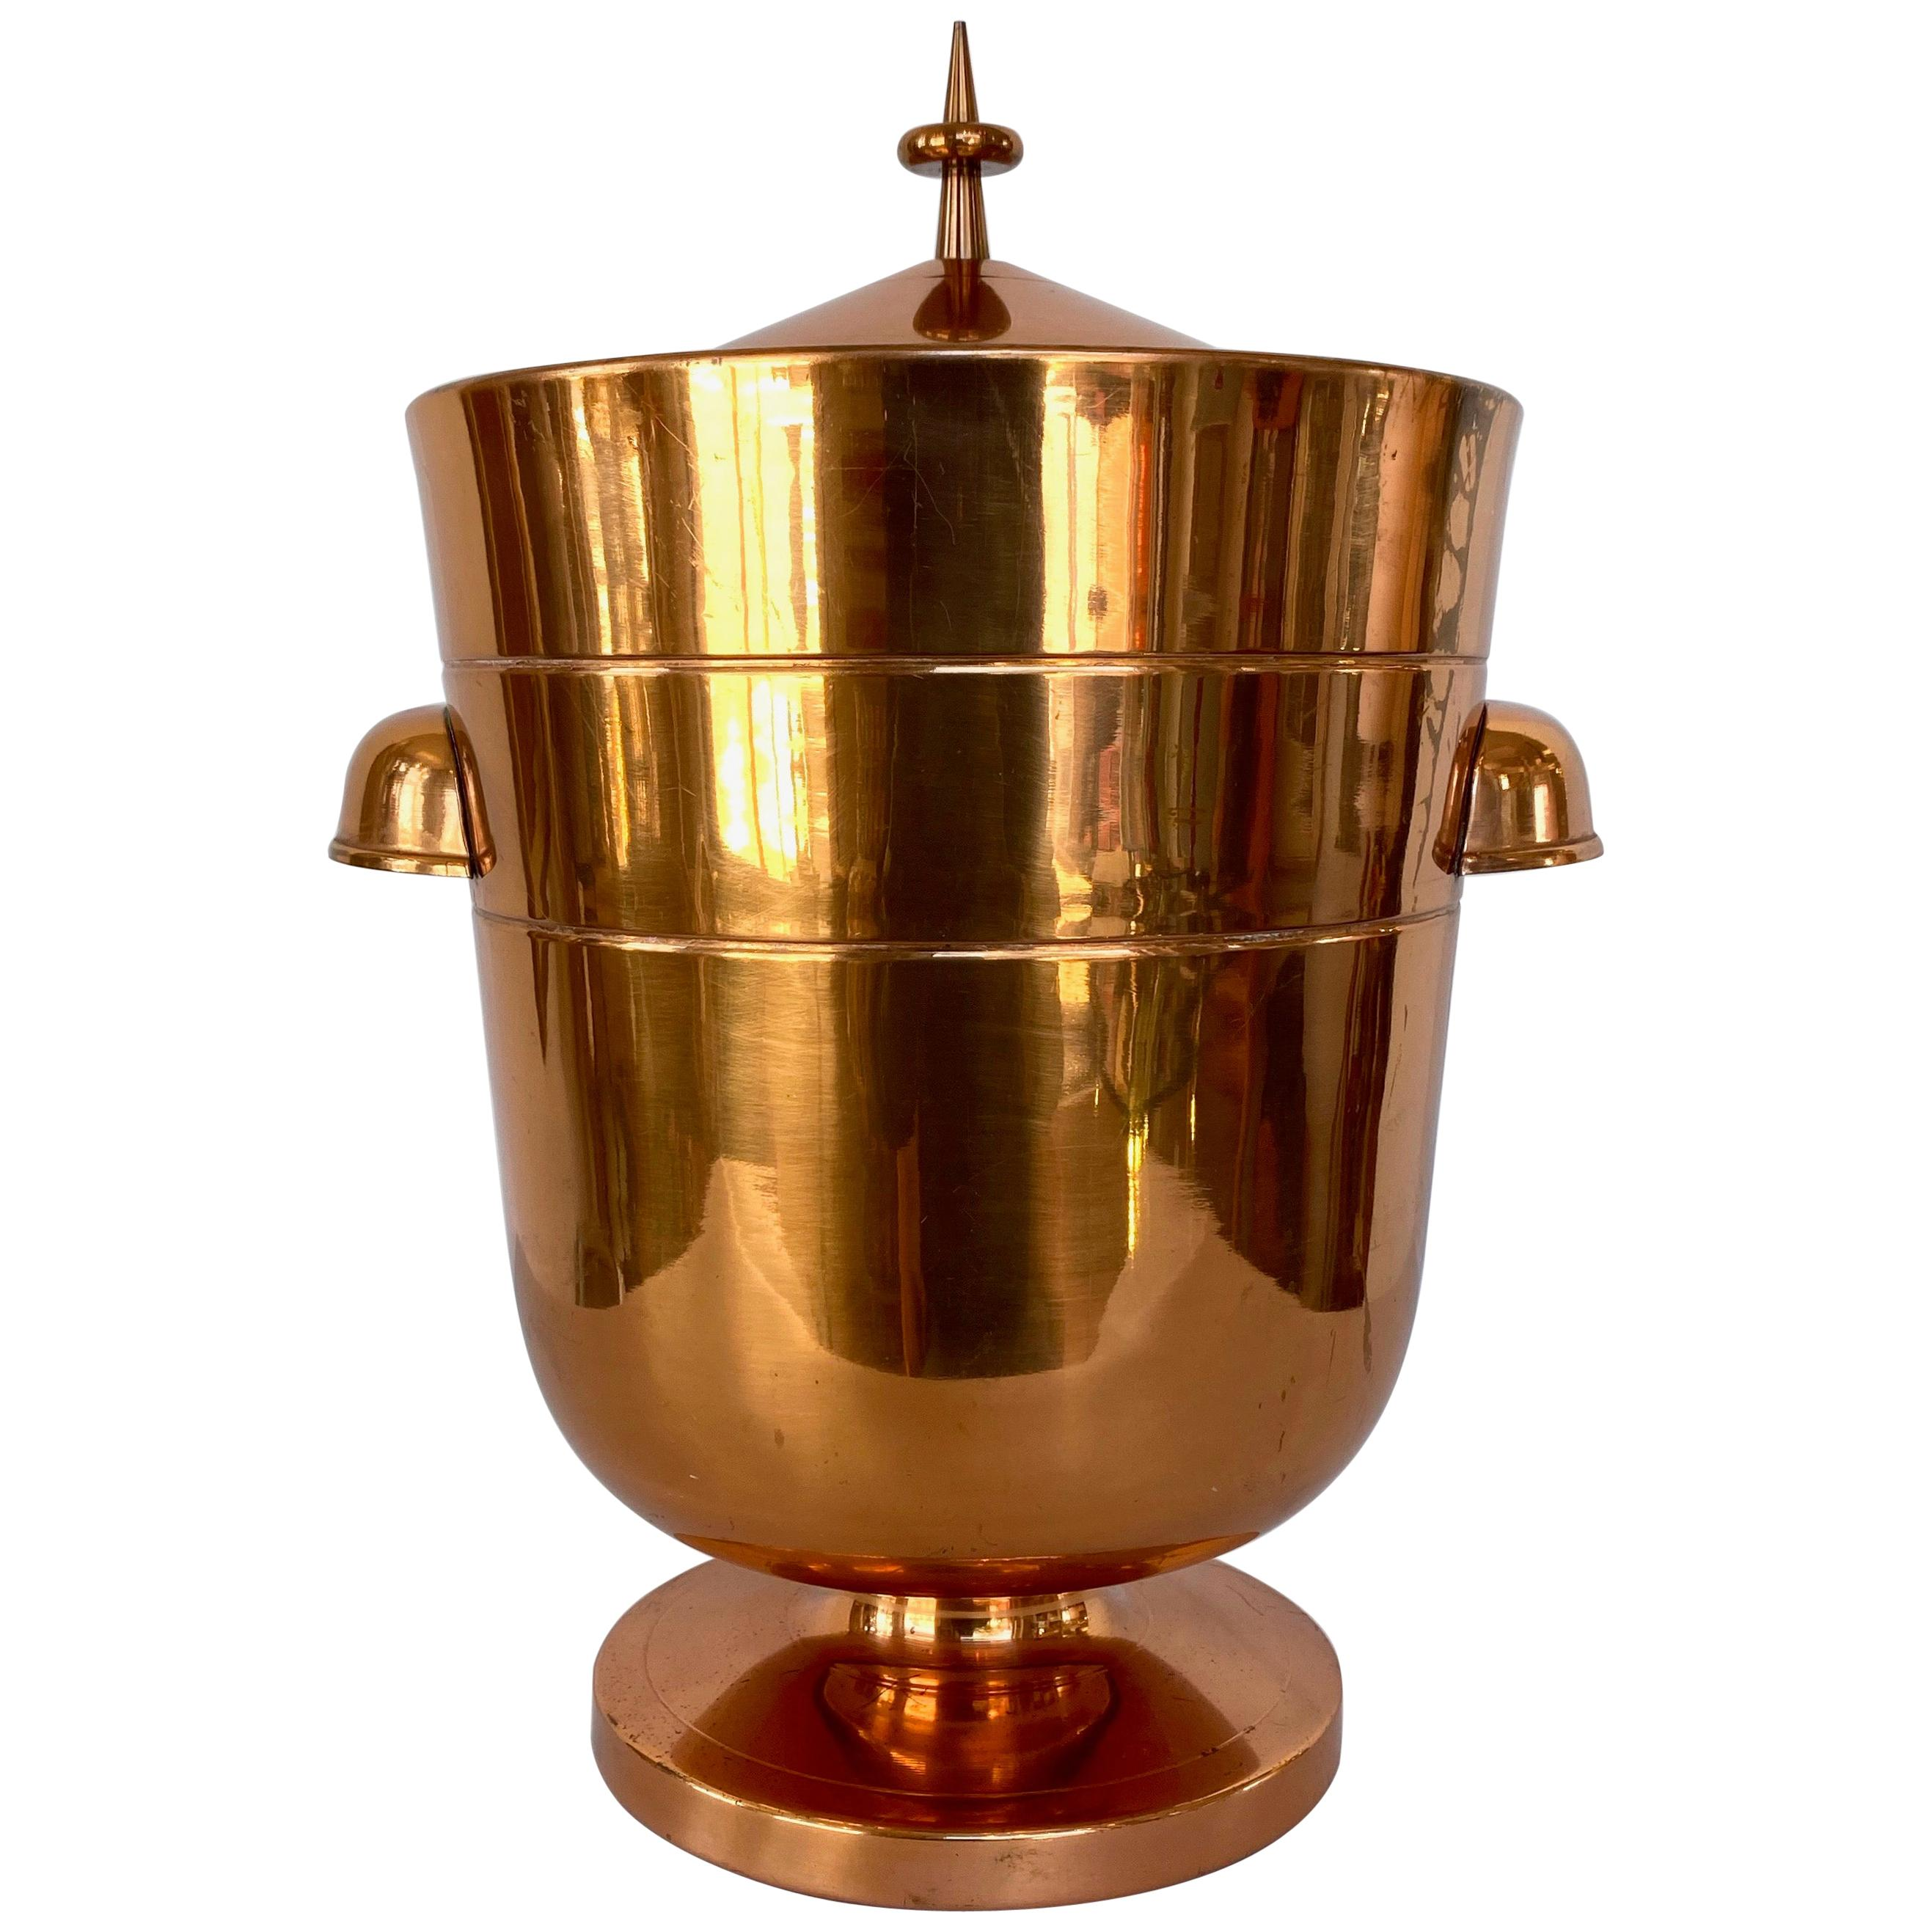 Tommi Parzinger Copper Ice Bucket or Champagne Cooler with Tongs, 1950s